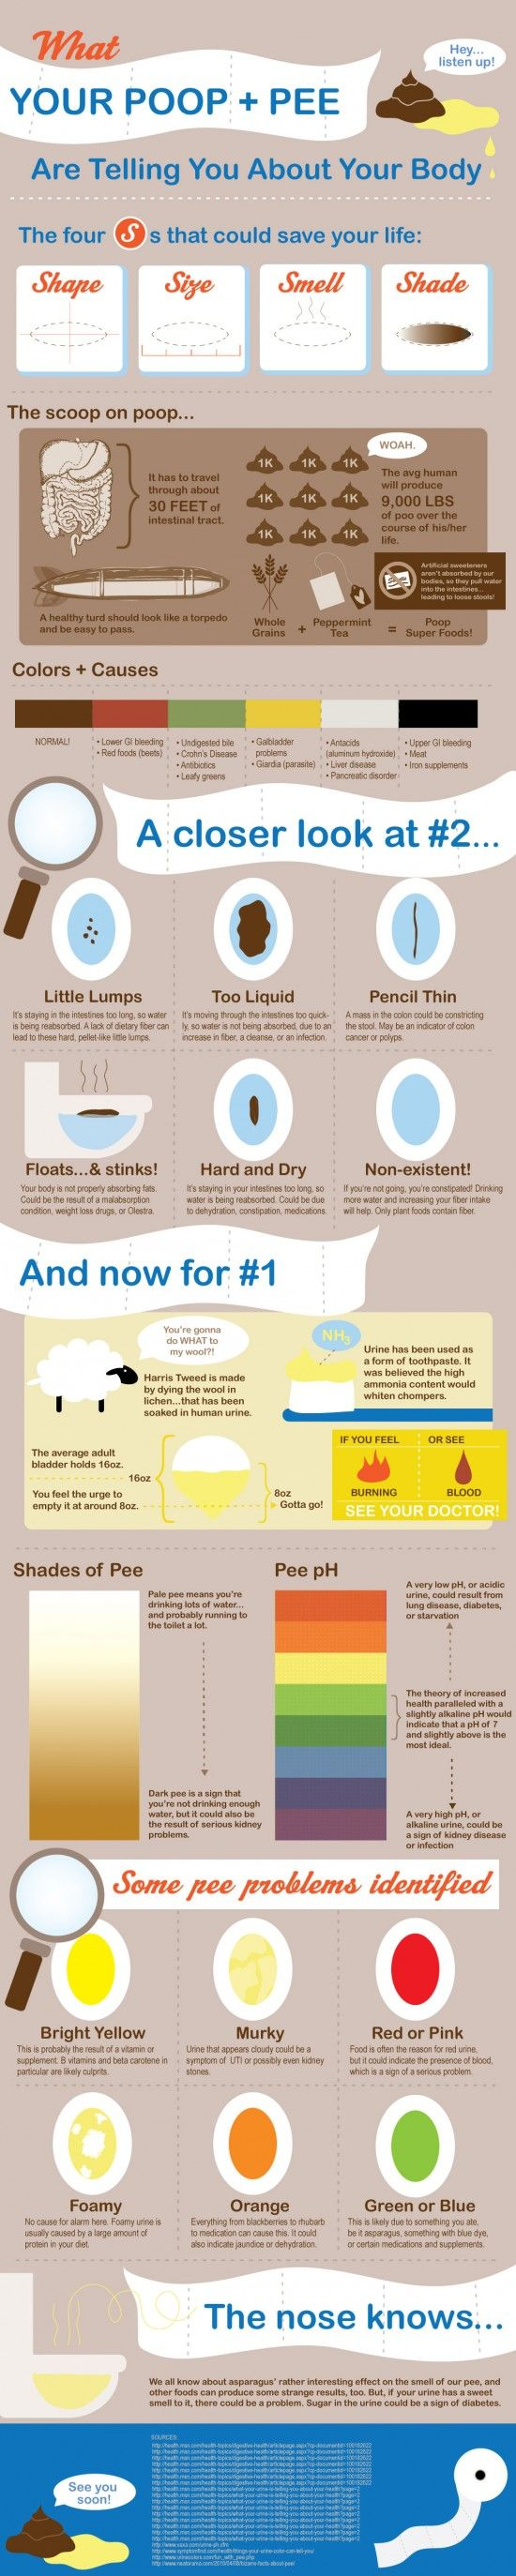 """Have you ever wondered if your poop looked """"normal,"""" but were too embarrassed to ask anyone else what their poop looks like? Poop is an important part of health and affects your beauty, as everything in your body works as an interrelated system. Well don't worry, because here is a guide to anything and everything you may have wondered about your pee, and yes, your poop."""